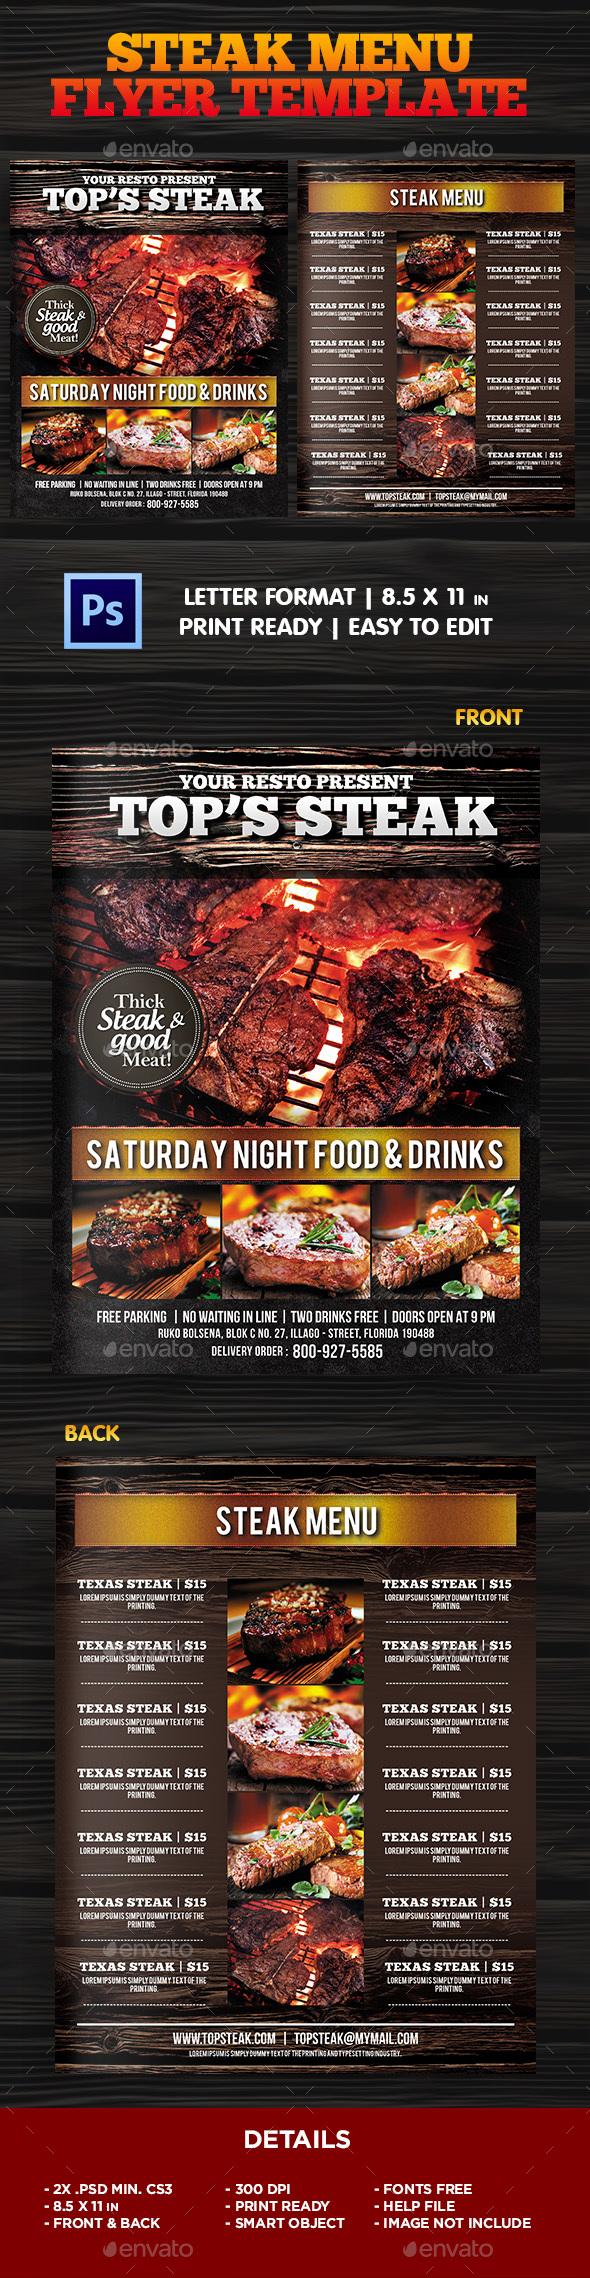 BBQ - Steak Menu Flyer Template